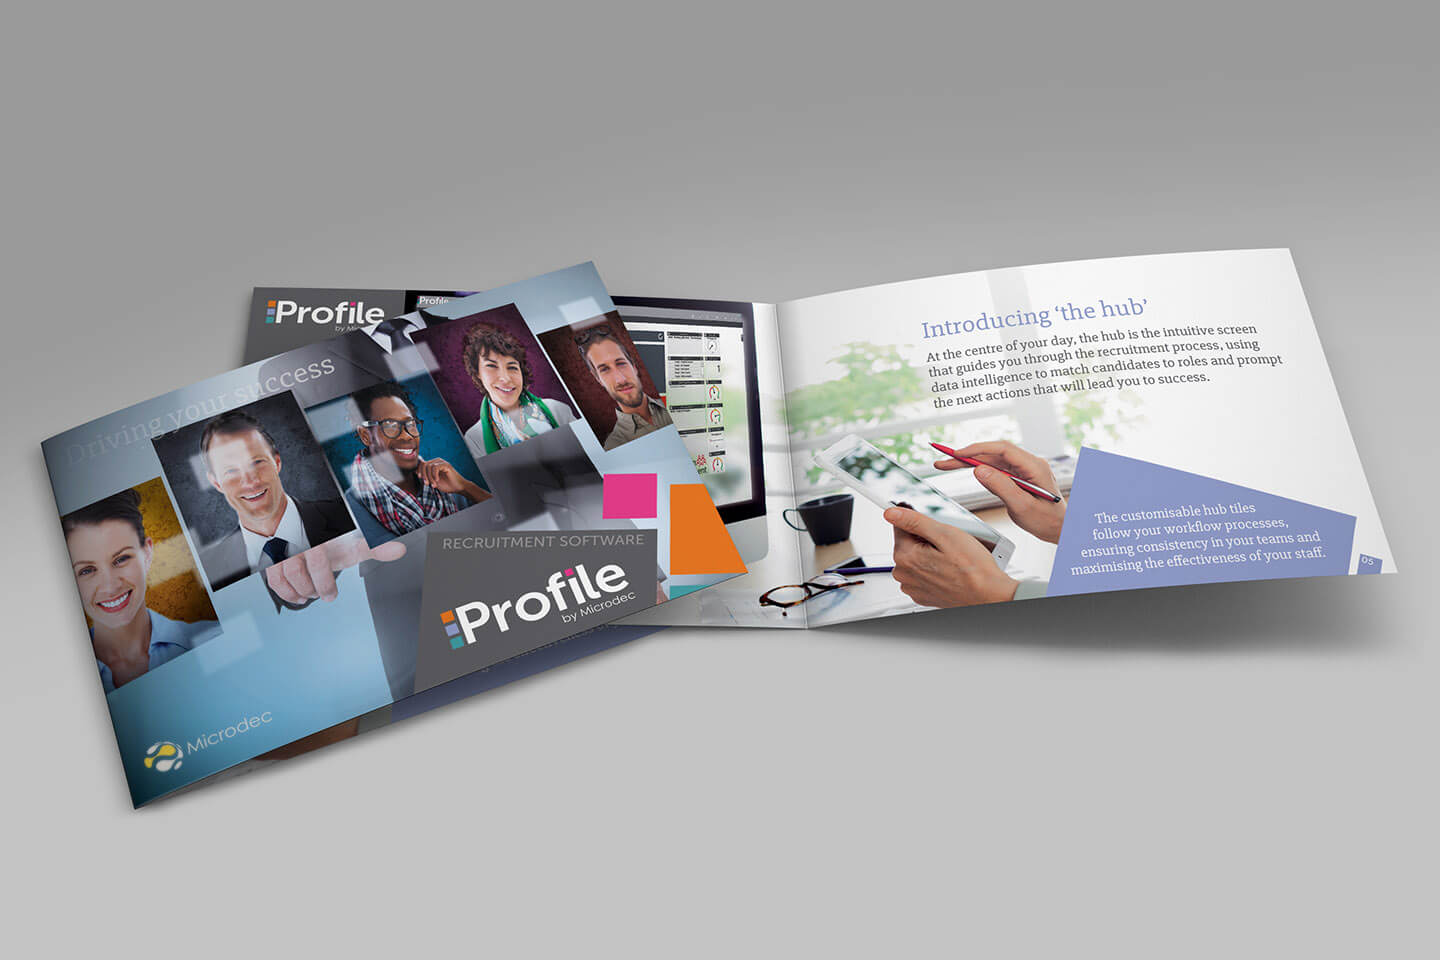 Microdec case study Profile promotional brochure visual